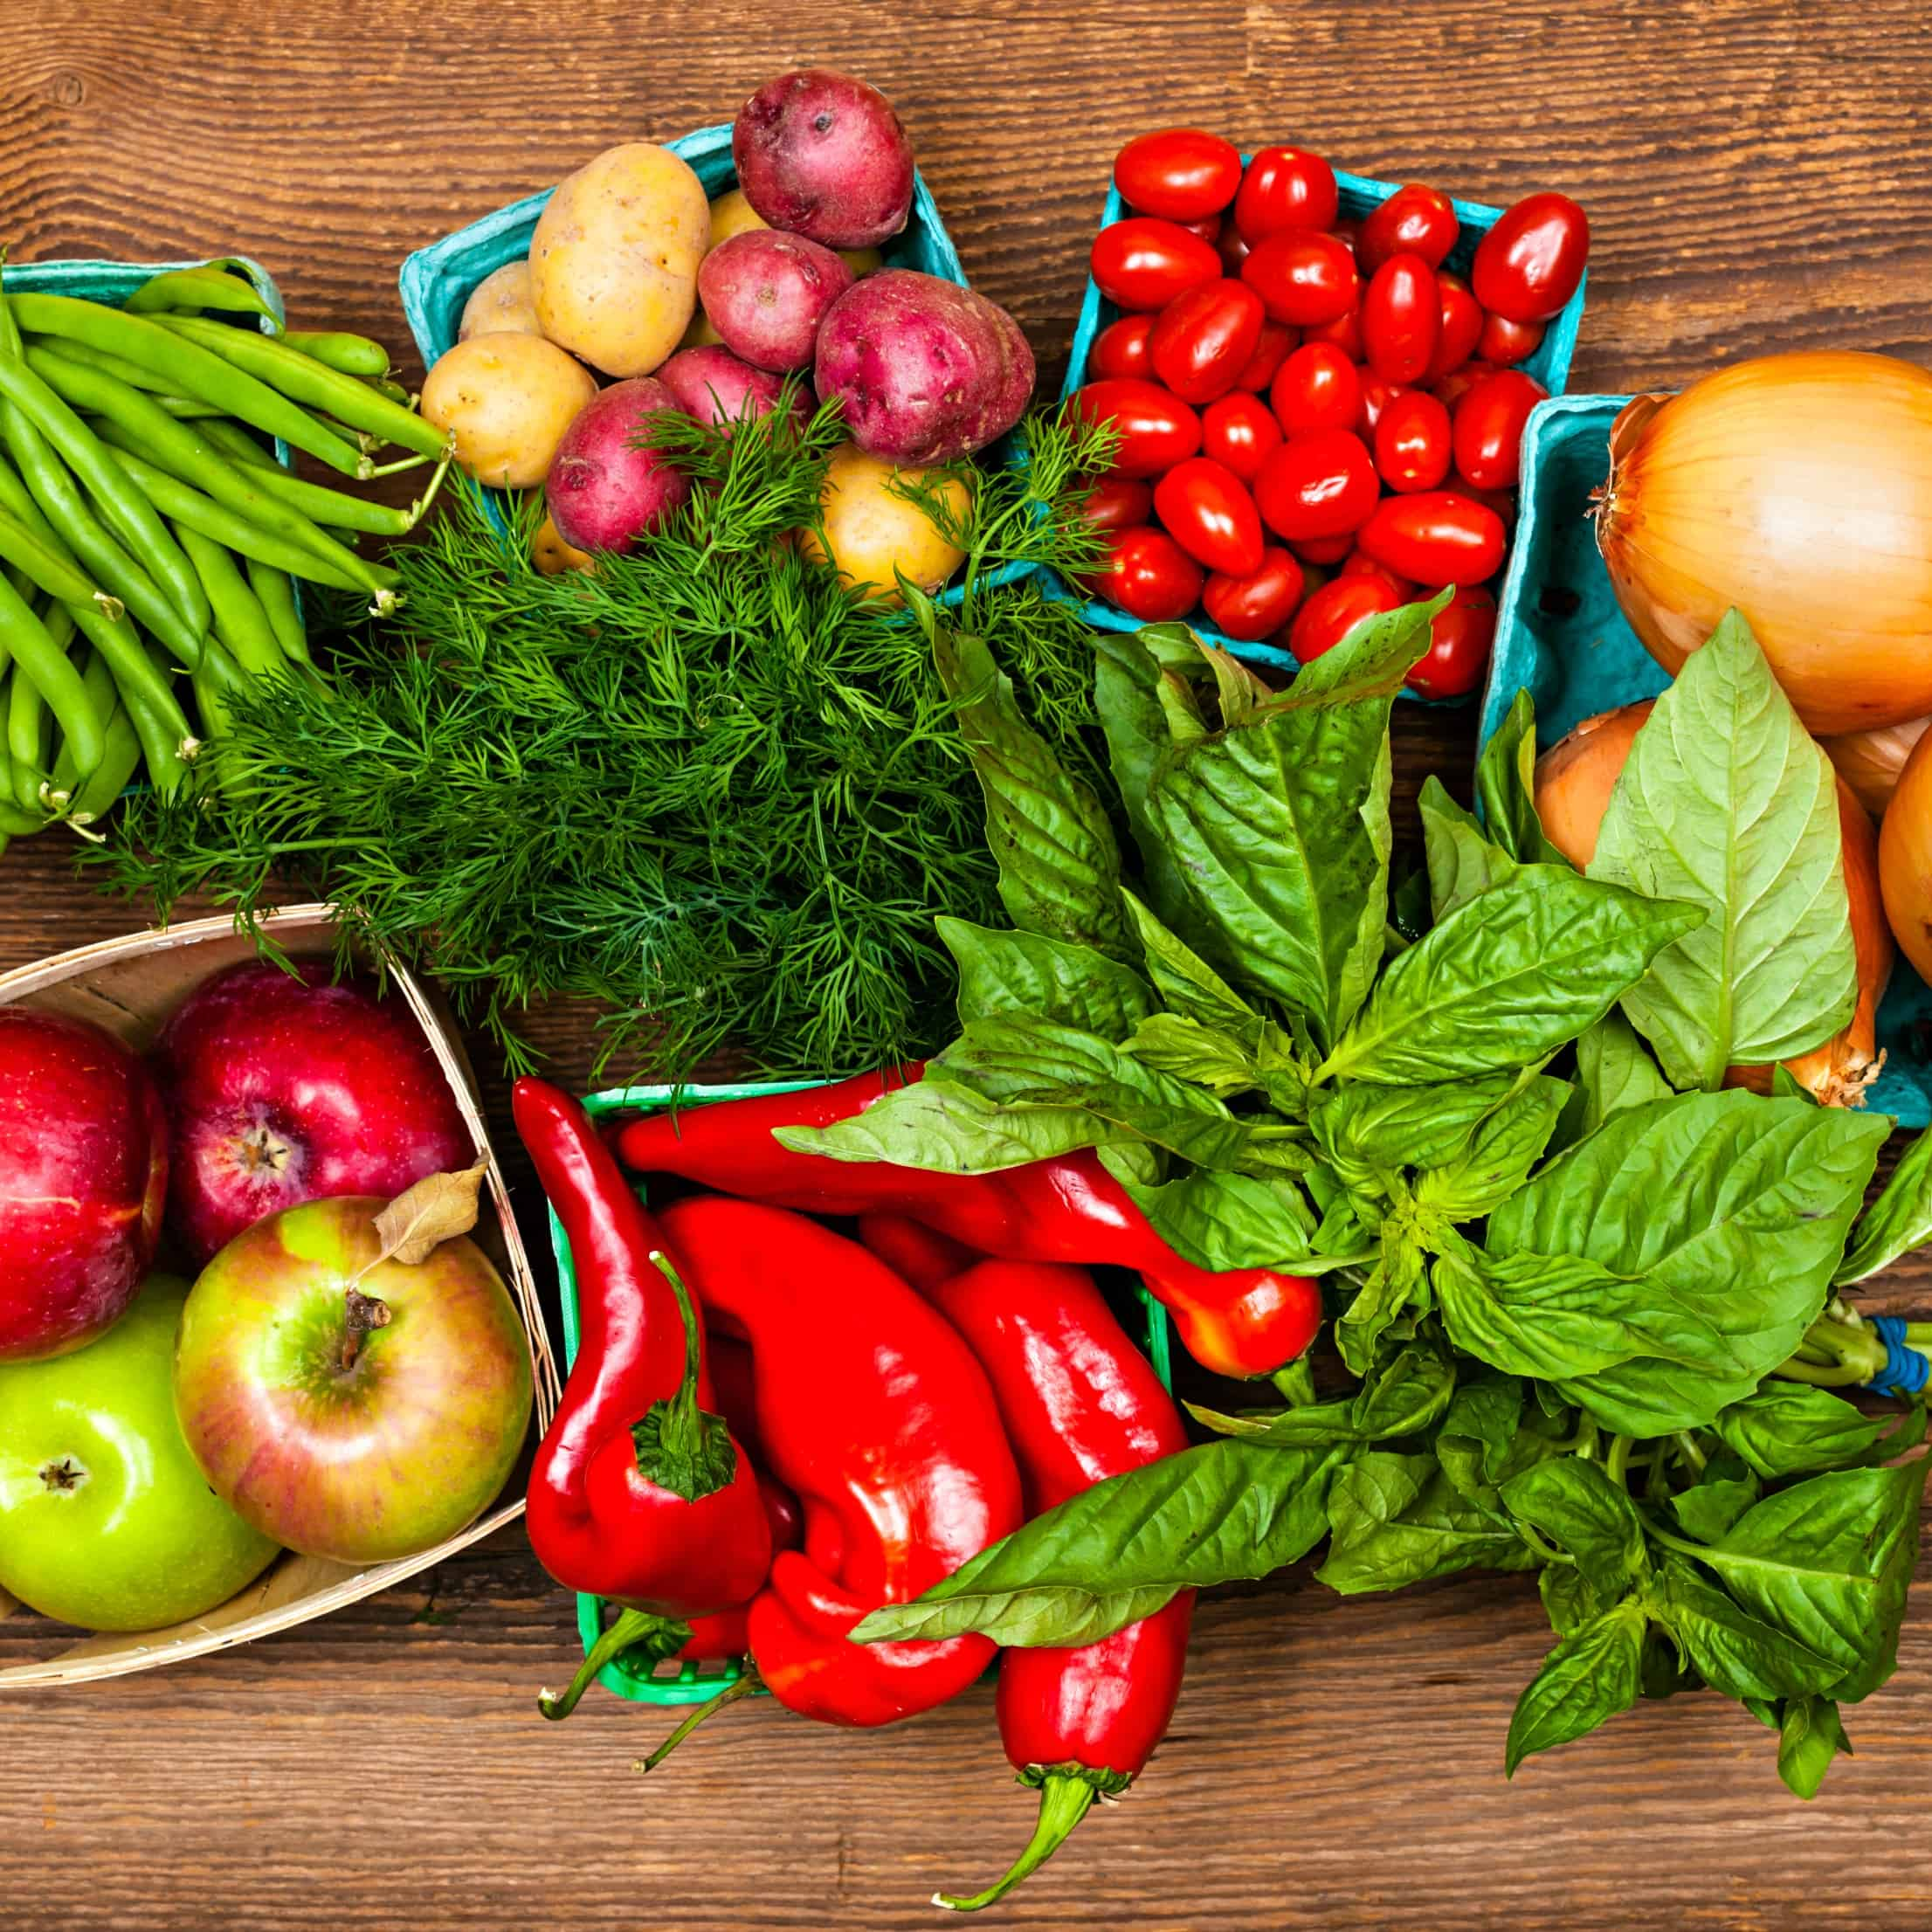 The Ultimate Guide on How to Shop For Healthy Groceries on a Budget